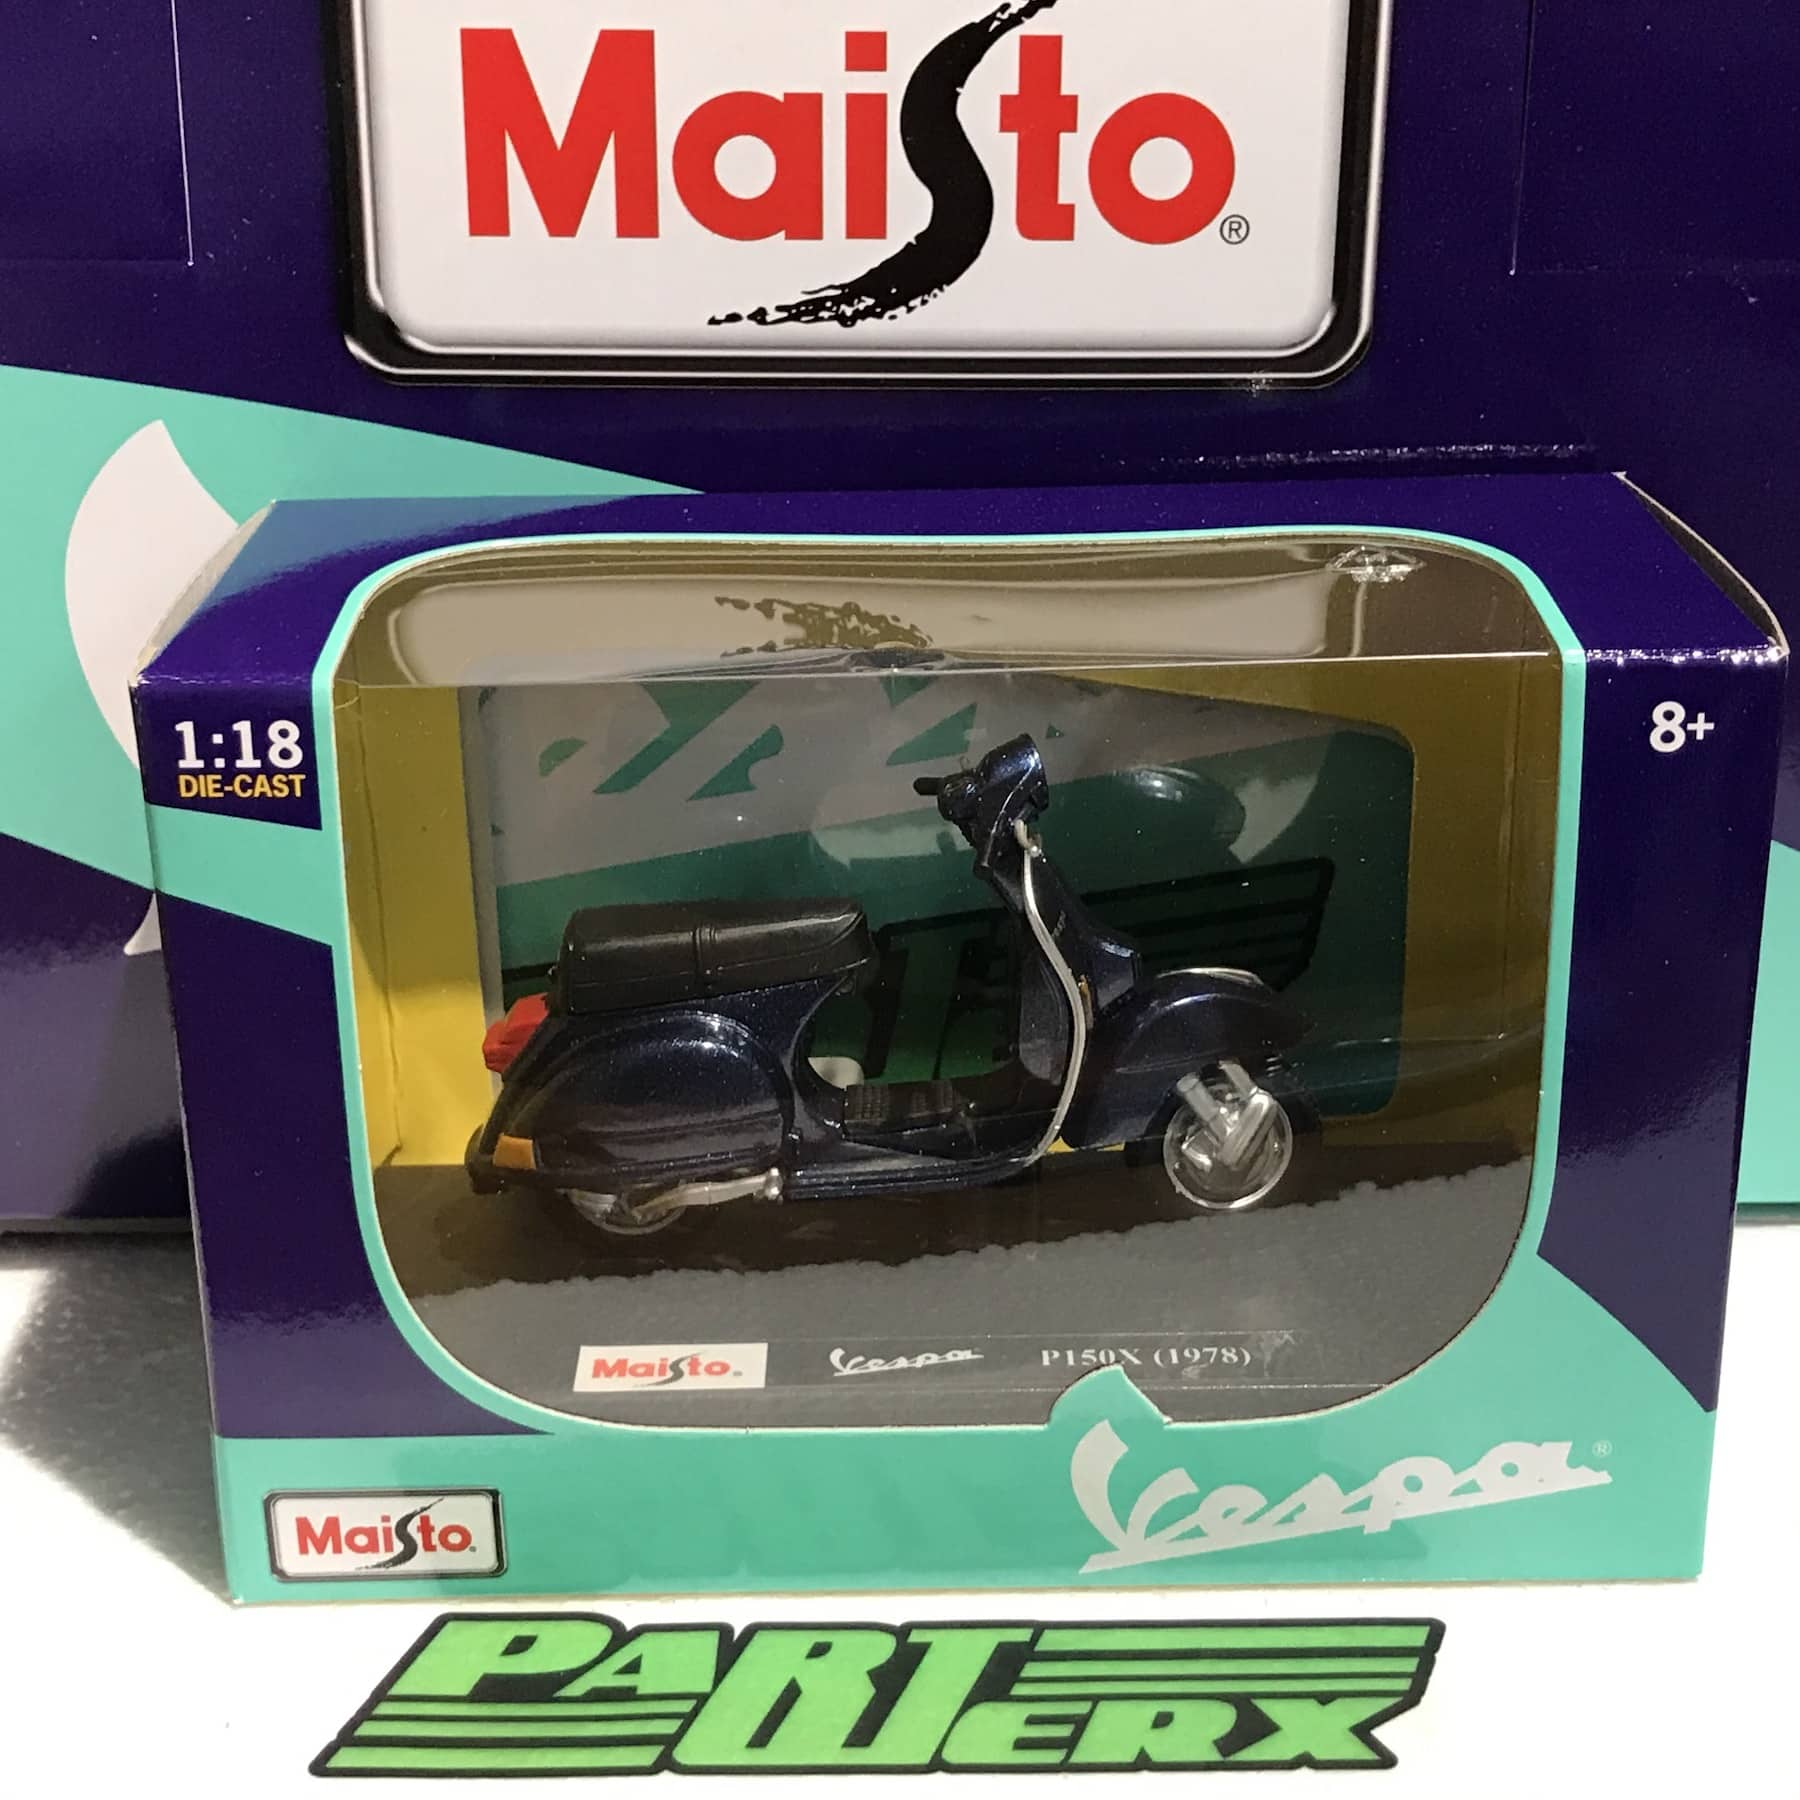 Vespa Scooter P150X 1978 1:18 Scale Model Kids Childs Toy Fathers Day Dads Gift Present